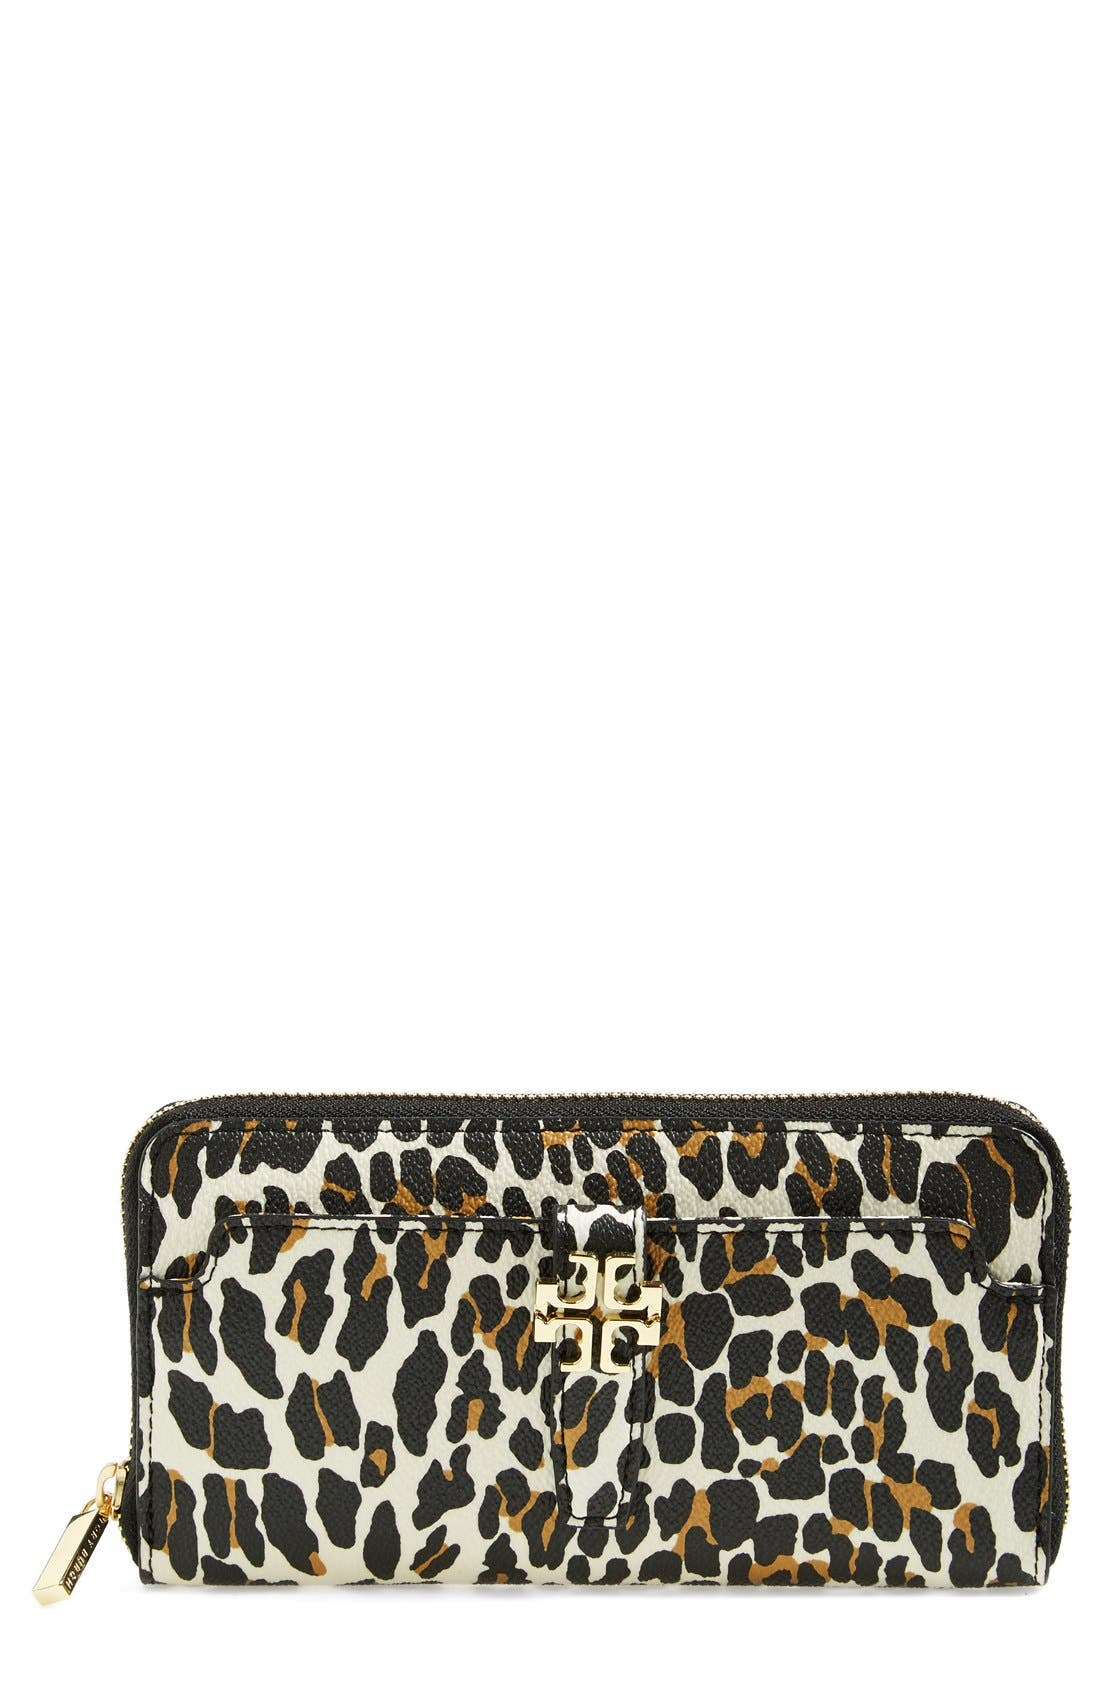 Main Image - Tory Burch 'Plaque' Leopard Print Continental Wallet